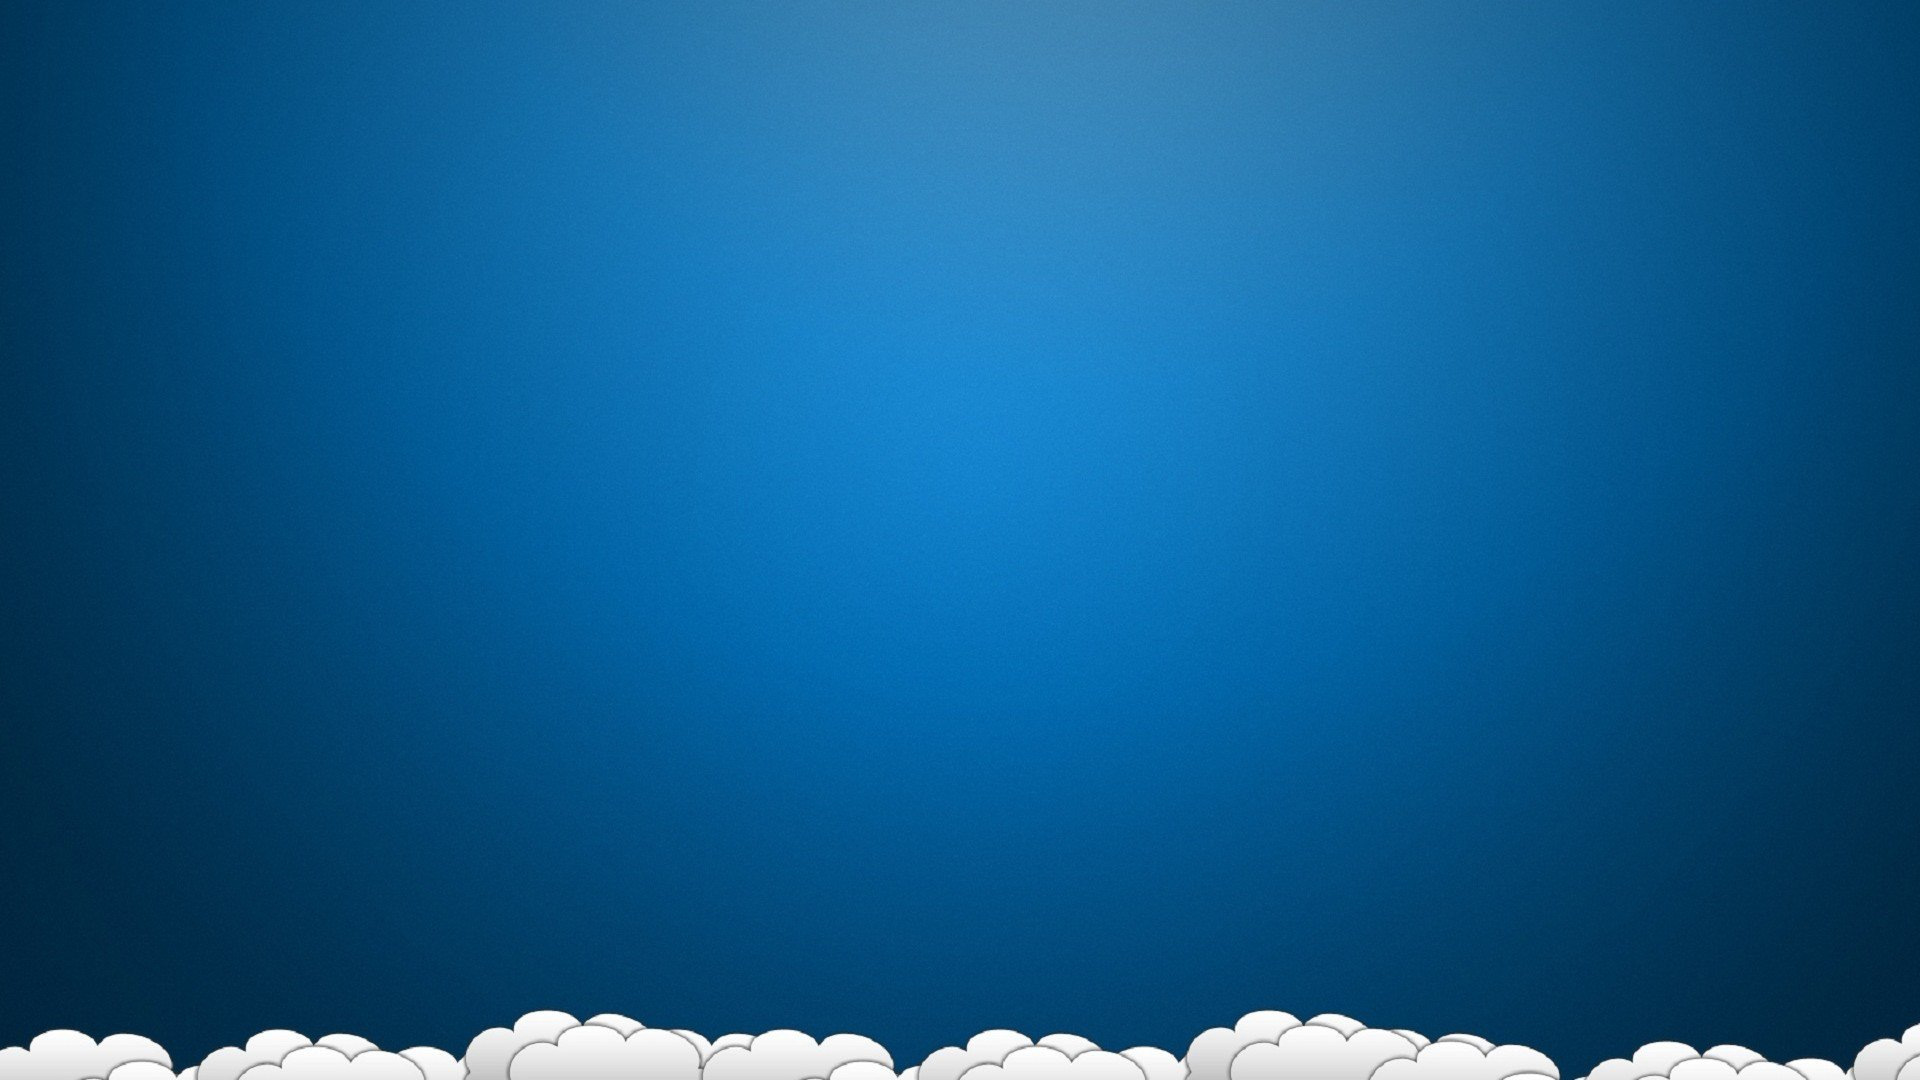 clouds hd wallpaper minimalist - photo #13